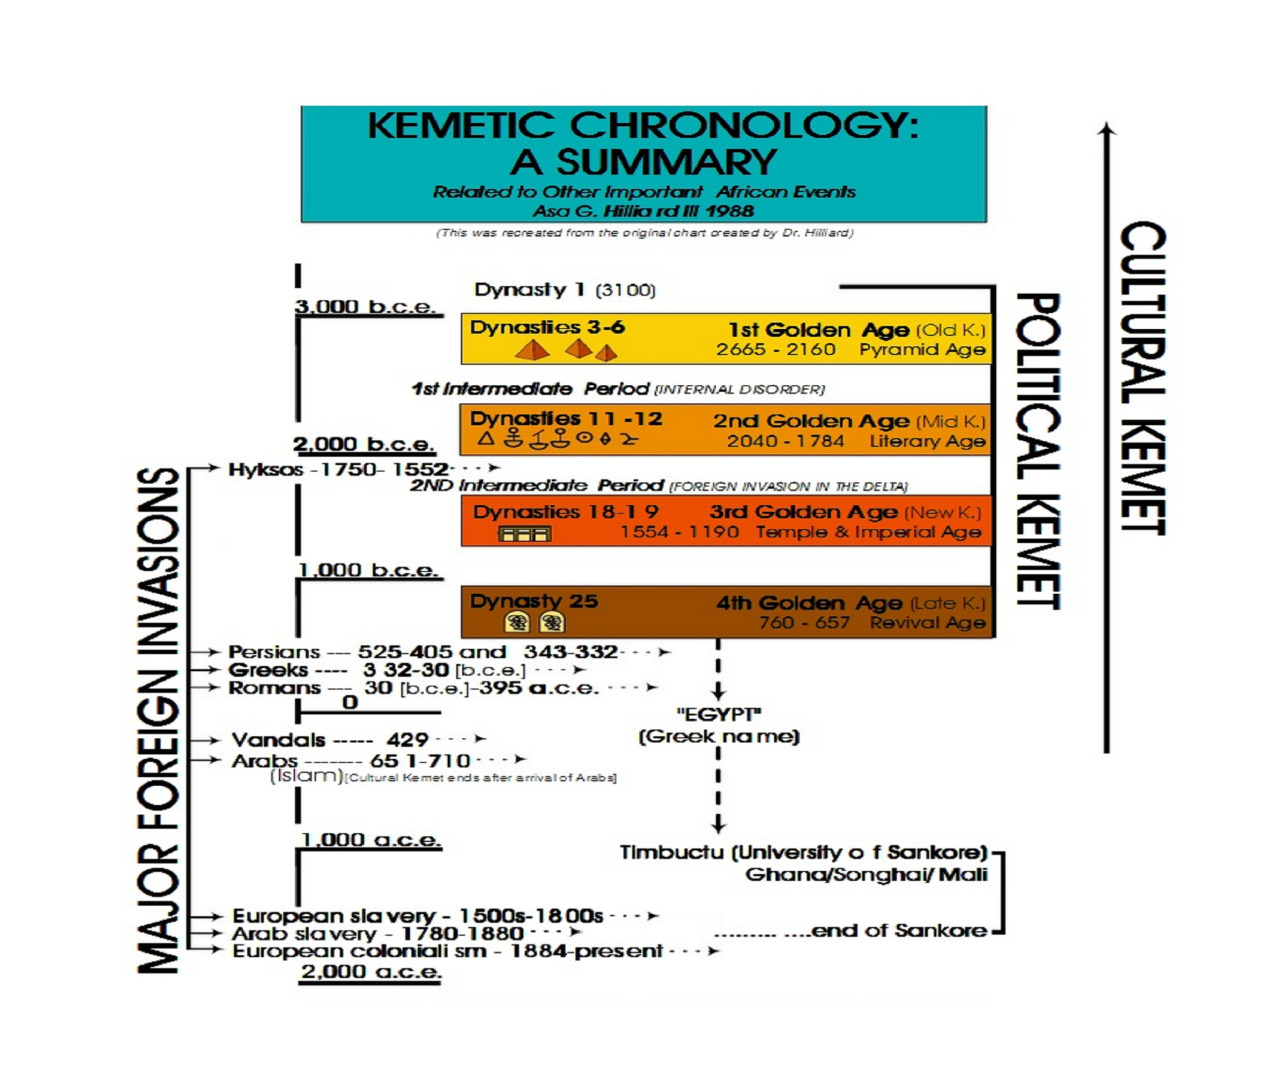 KEMETIC CHRONOLOGY: A SUMMARY BY ASA G. HILLARD III